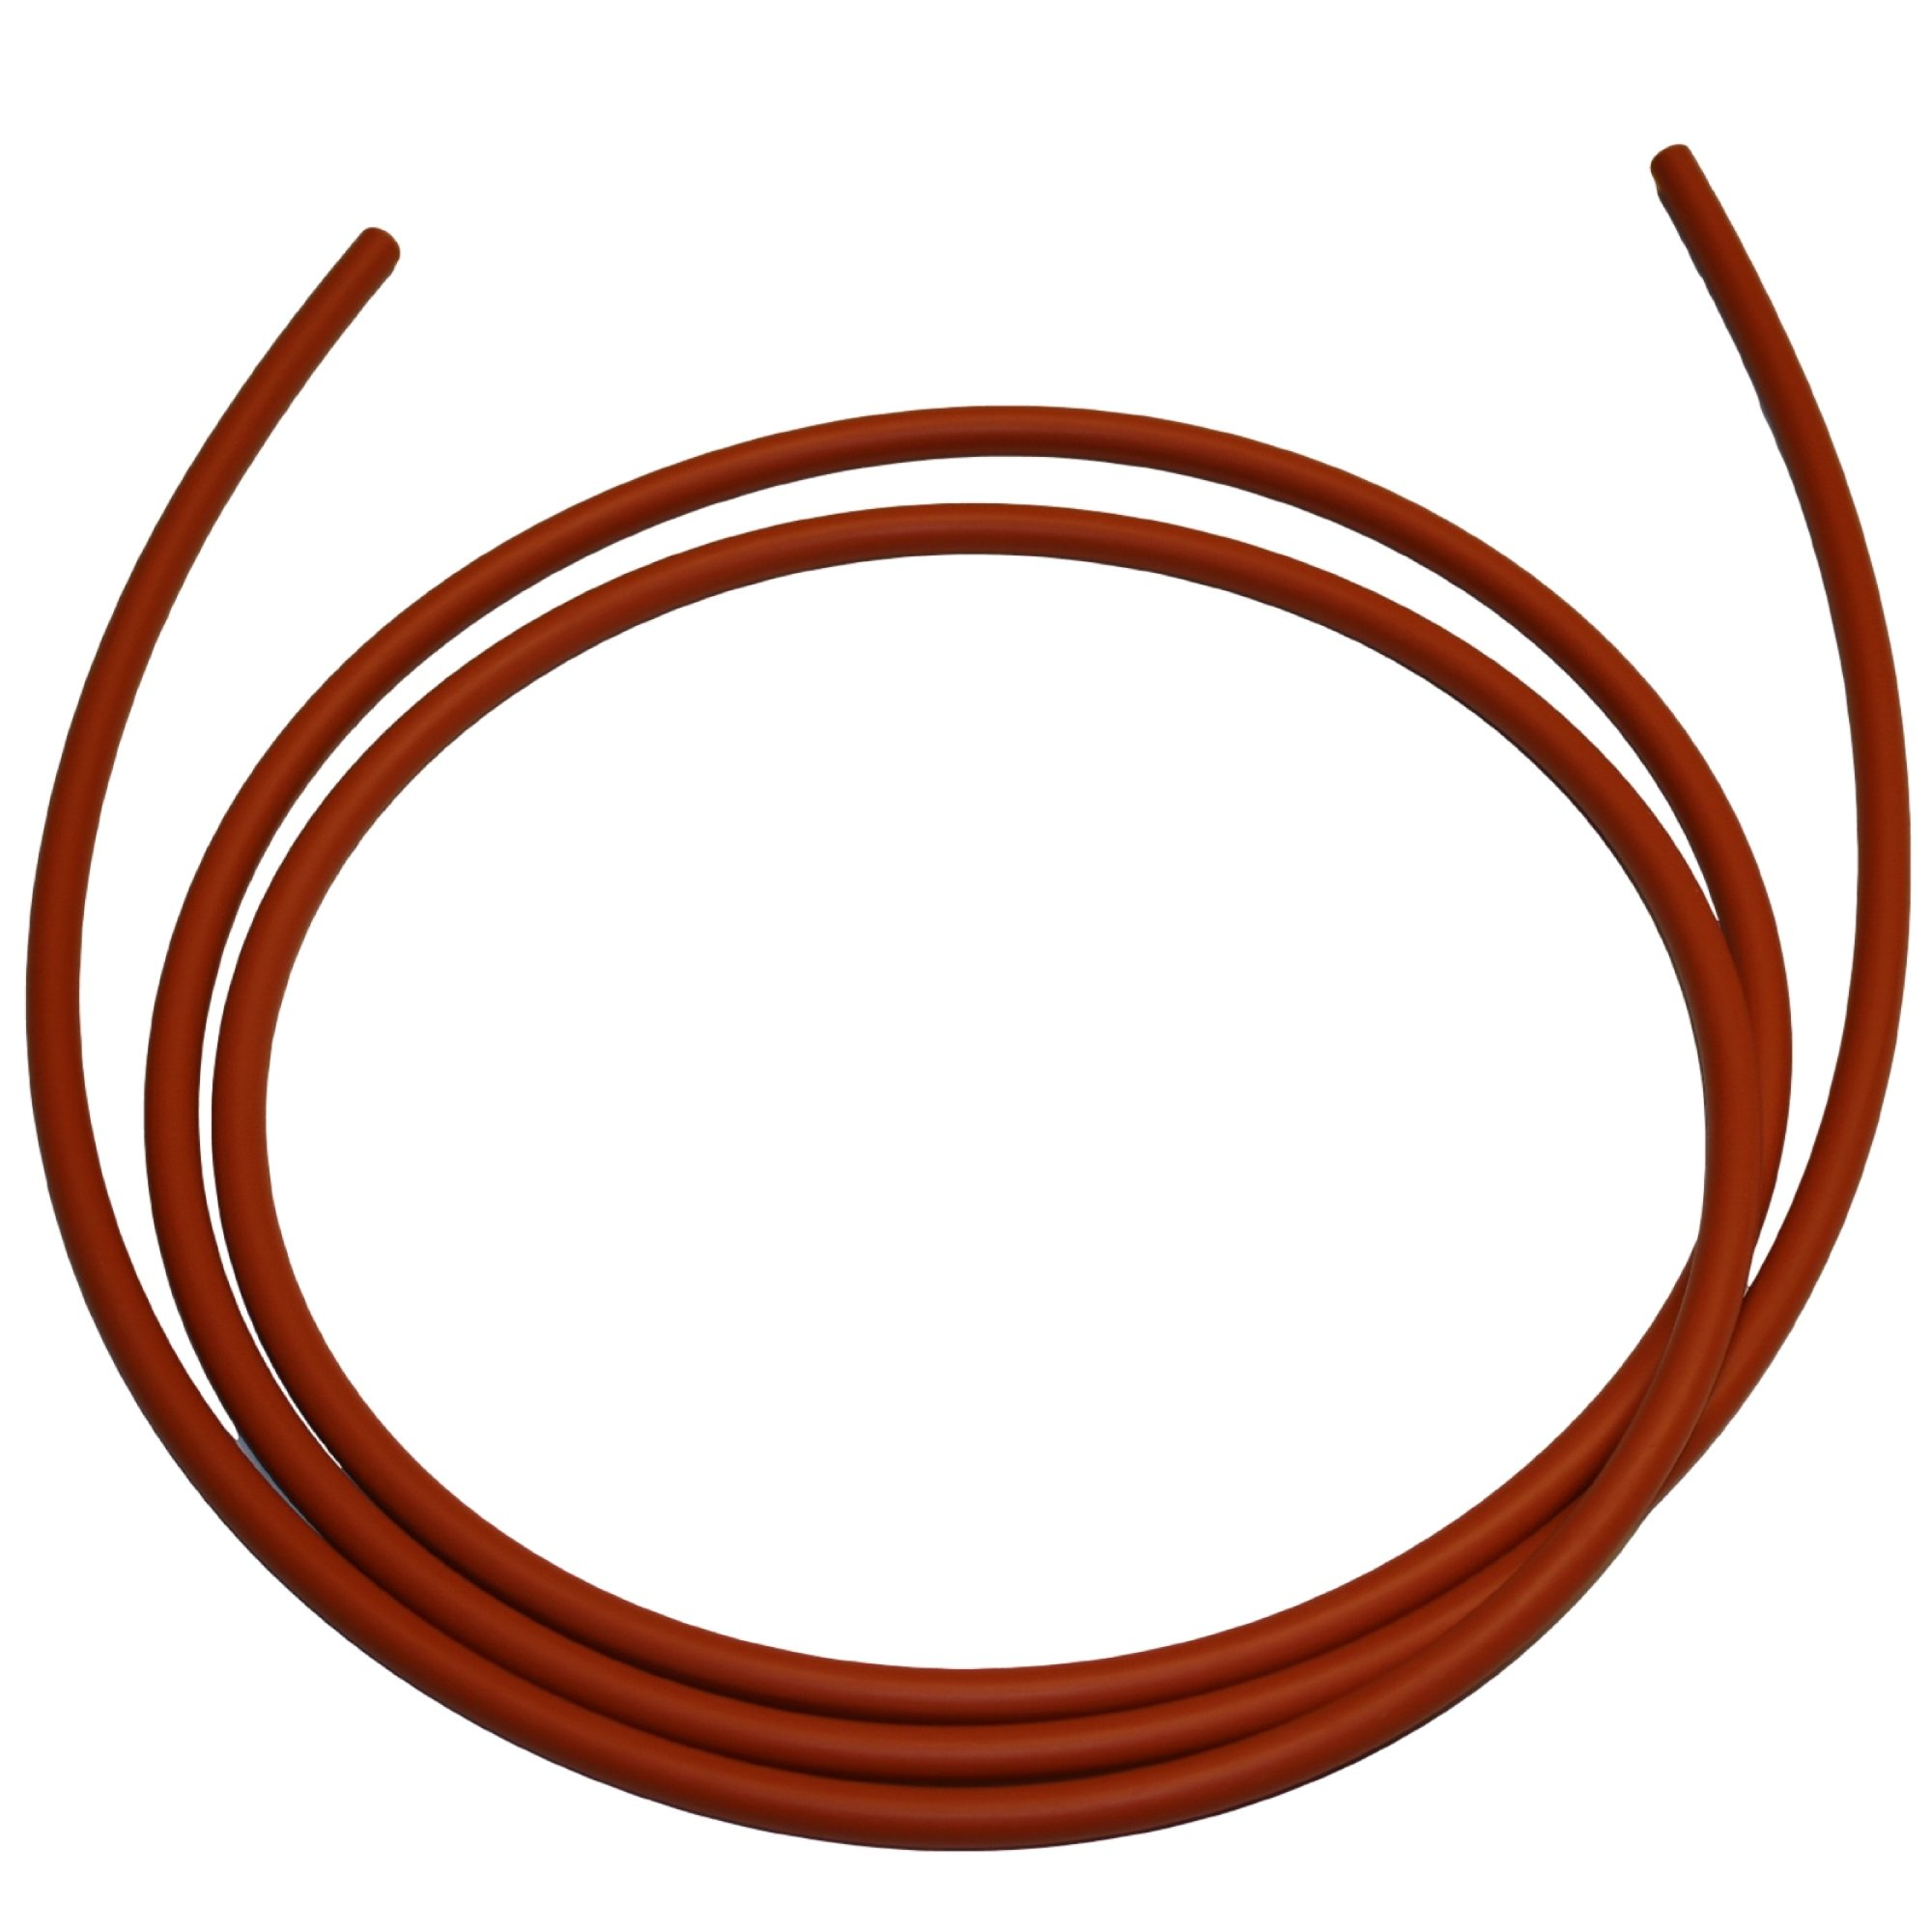 .275'' (1/4'' Nominal, 7 mm) Silicone O-Ring Cord Stock, 70A Durometer, 0.275'' Thickness, 10' Piece, Red by Small Parts